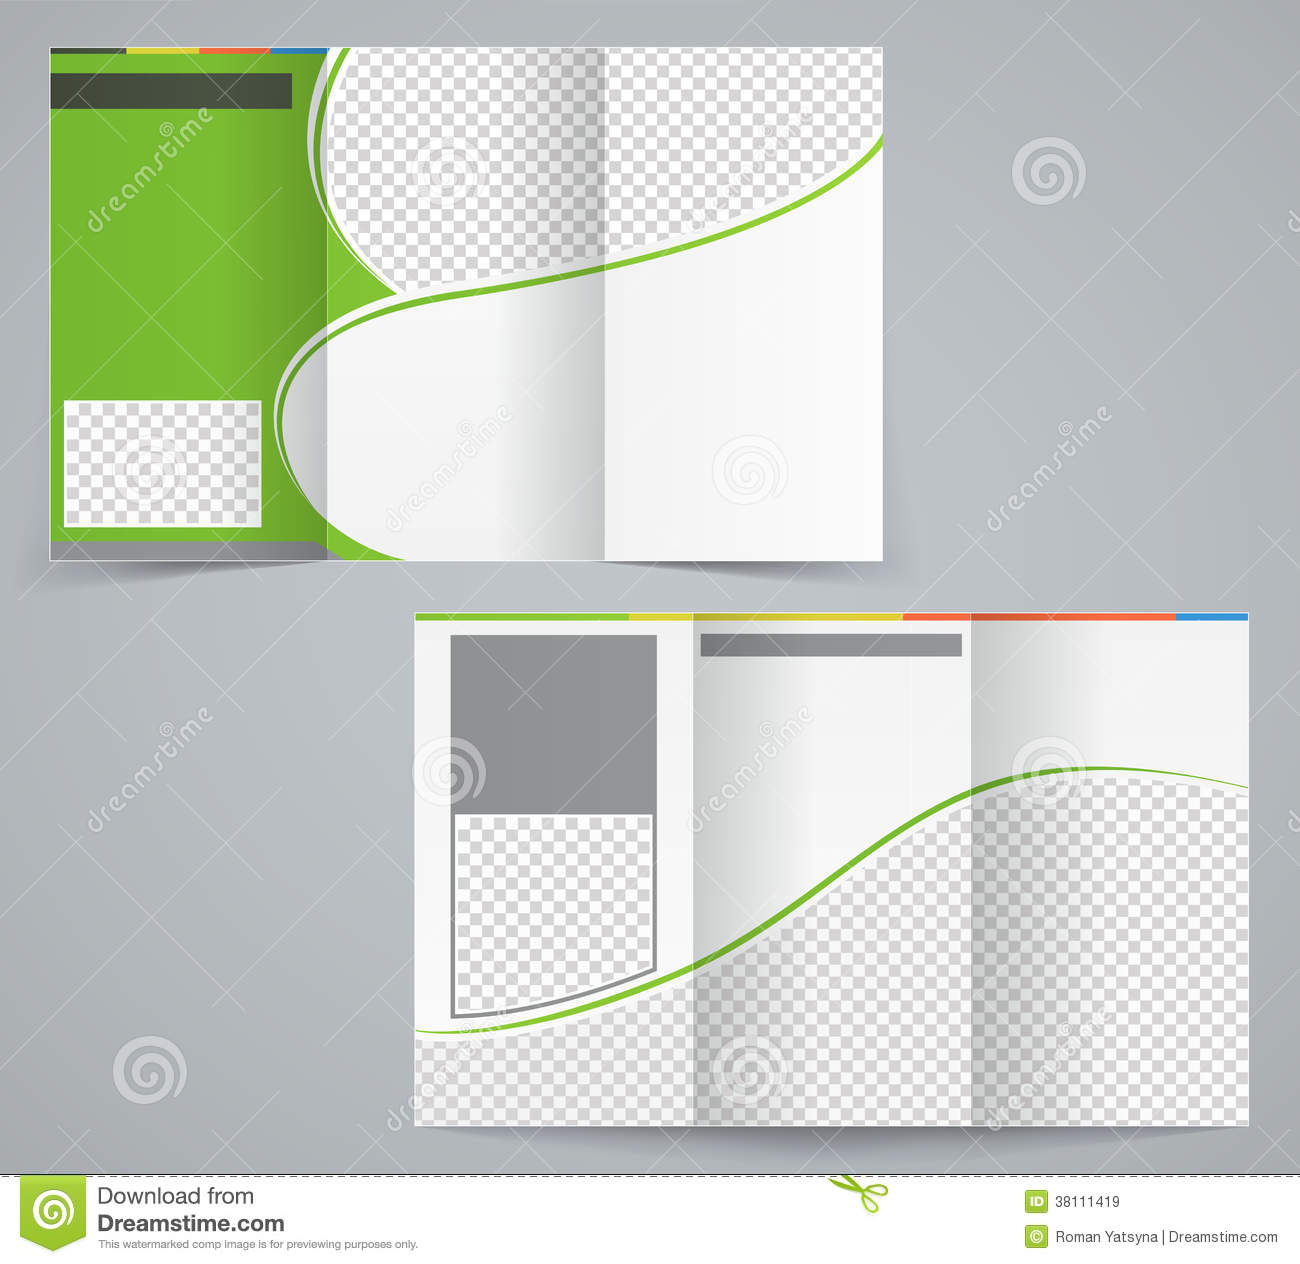 Free trifold brochure templates 300 sample brochures examples trifold business brochure template vector green stock vector free business brochure templates accmission Gallery